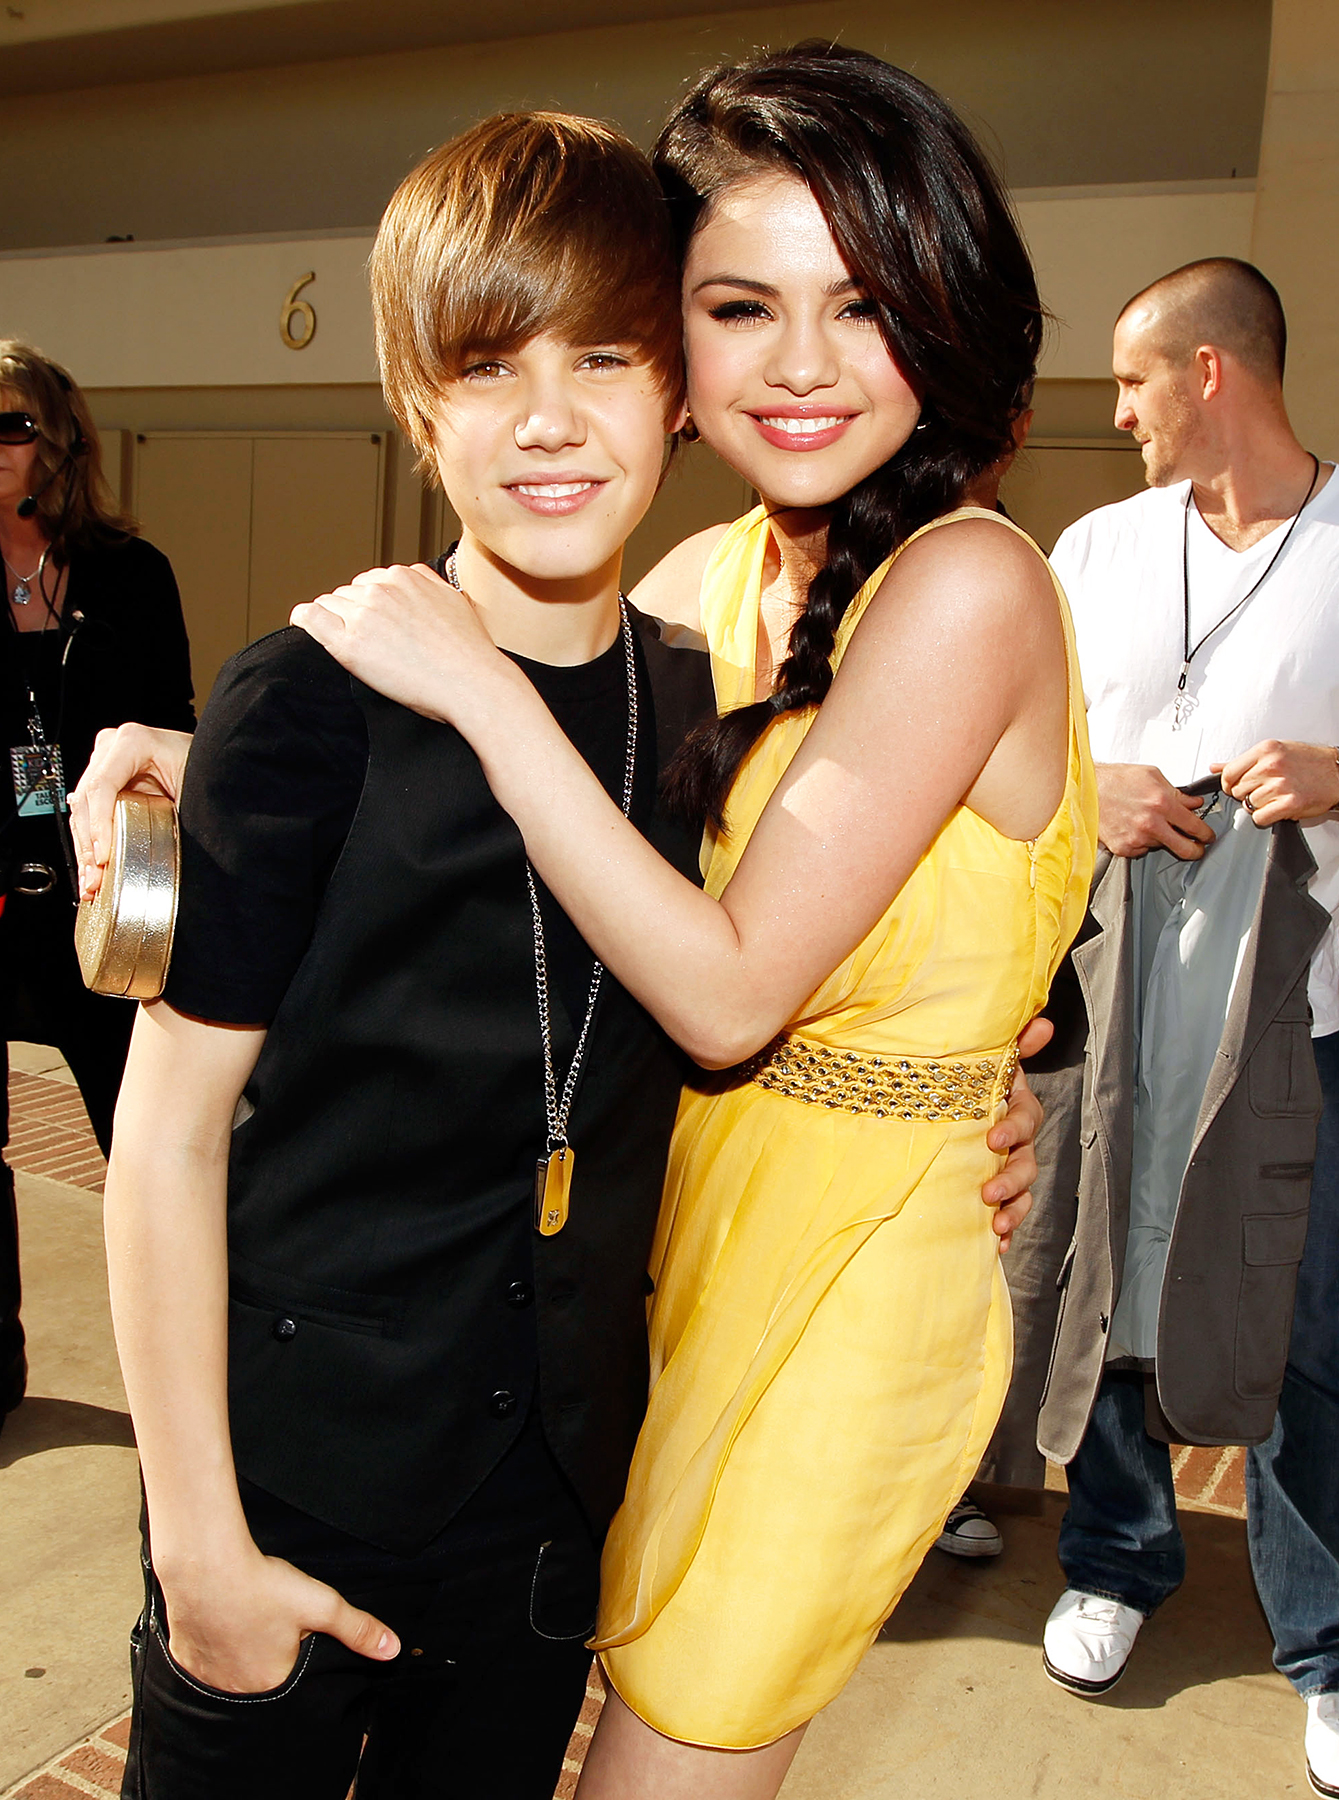 Justin Dating Now Selena Bieber Is Gomez